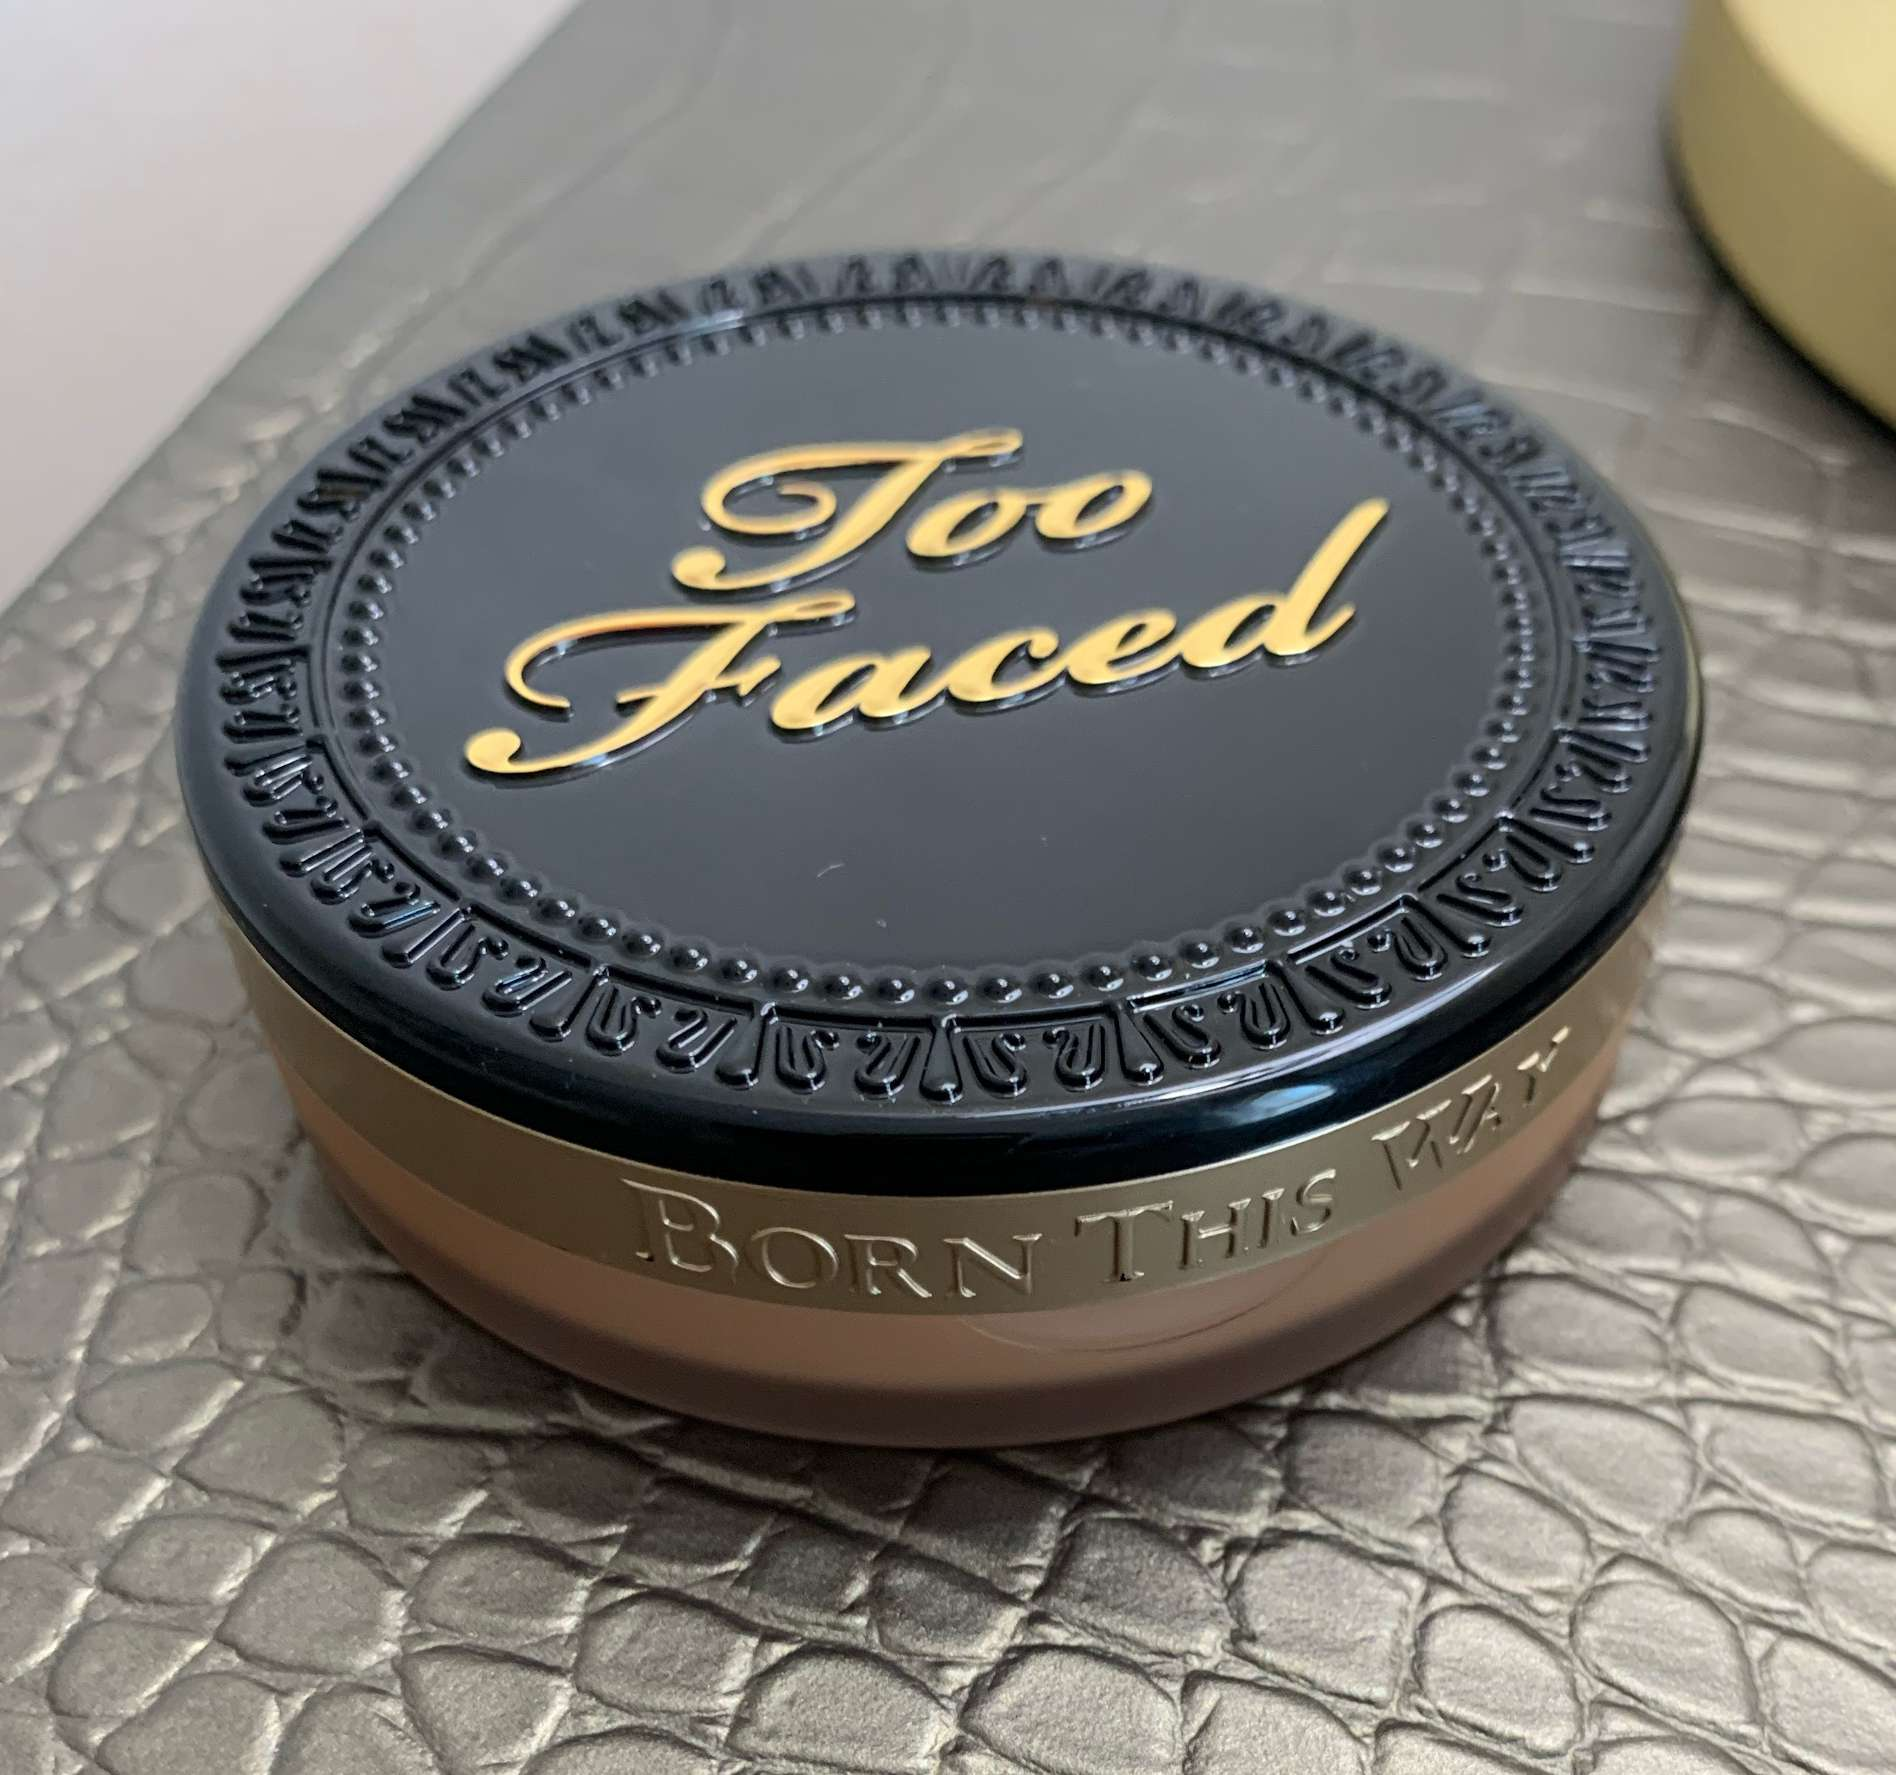 Too Faced Born This Way Multi-Use Complexion Powder in Butterscotch